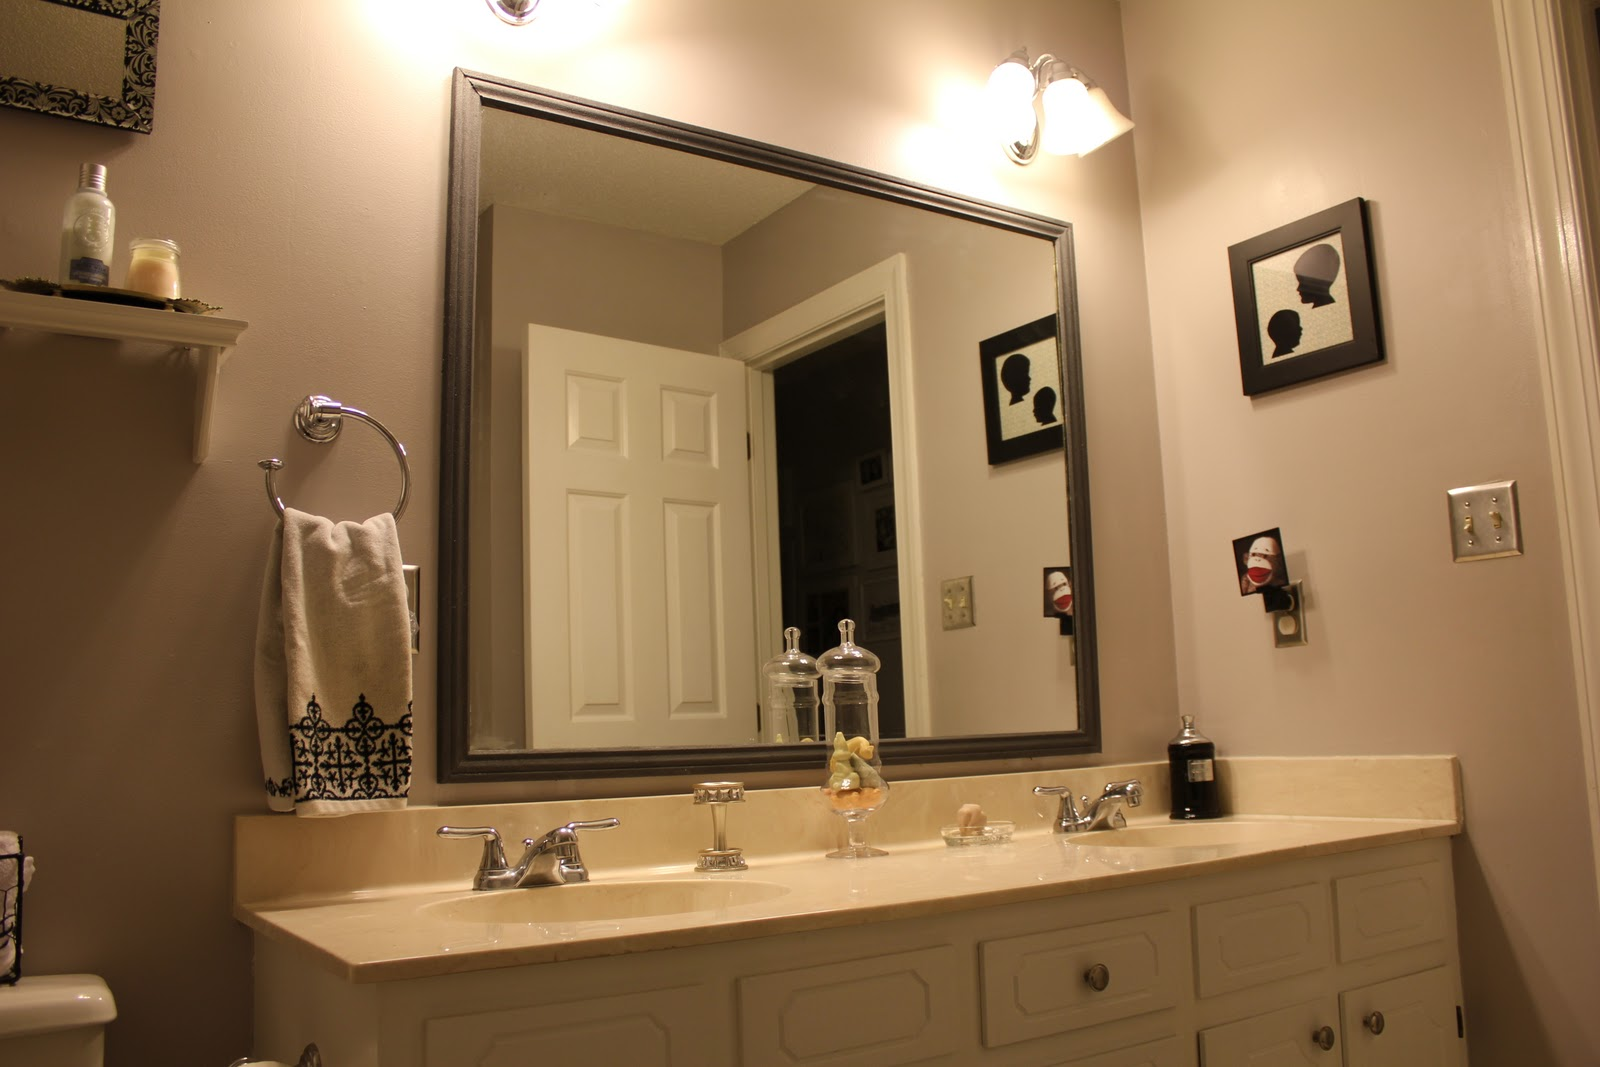 Peahen pad framing an existing bathroom mirror for Bathroom wall mirrors